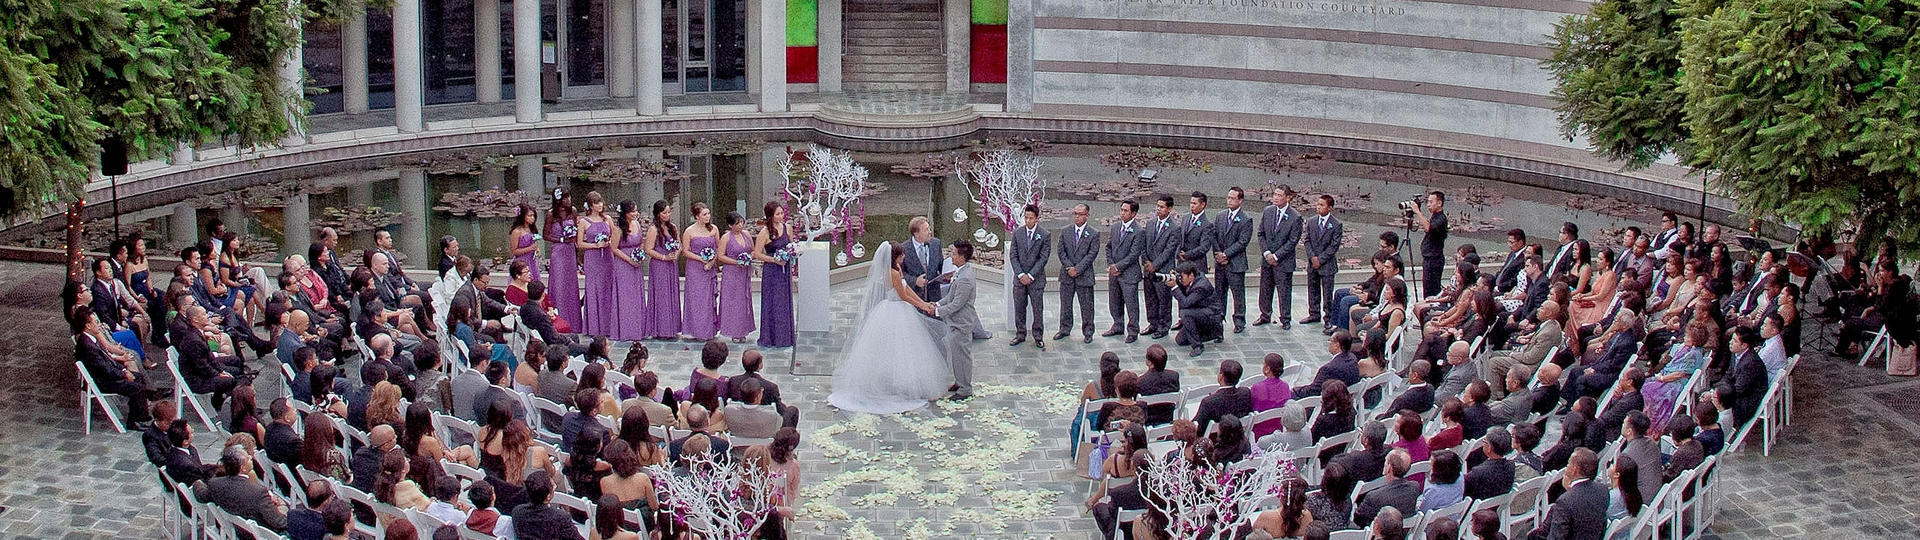 Wedding party in Taper Courtyard